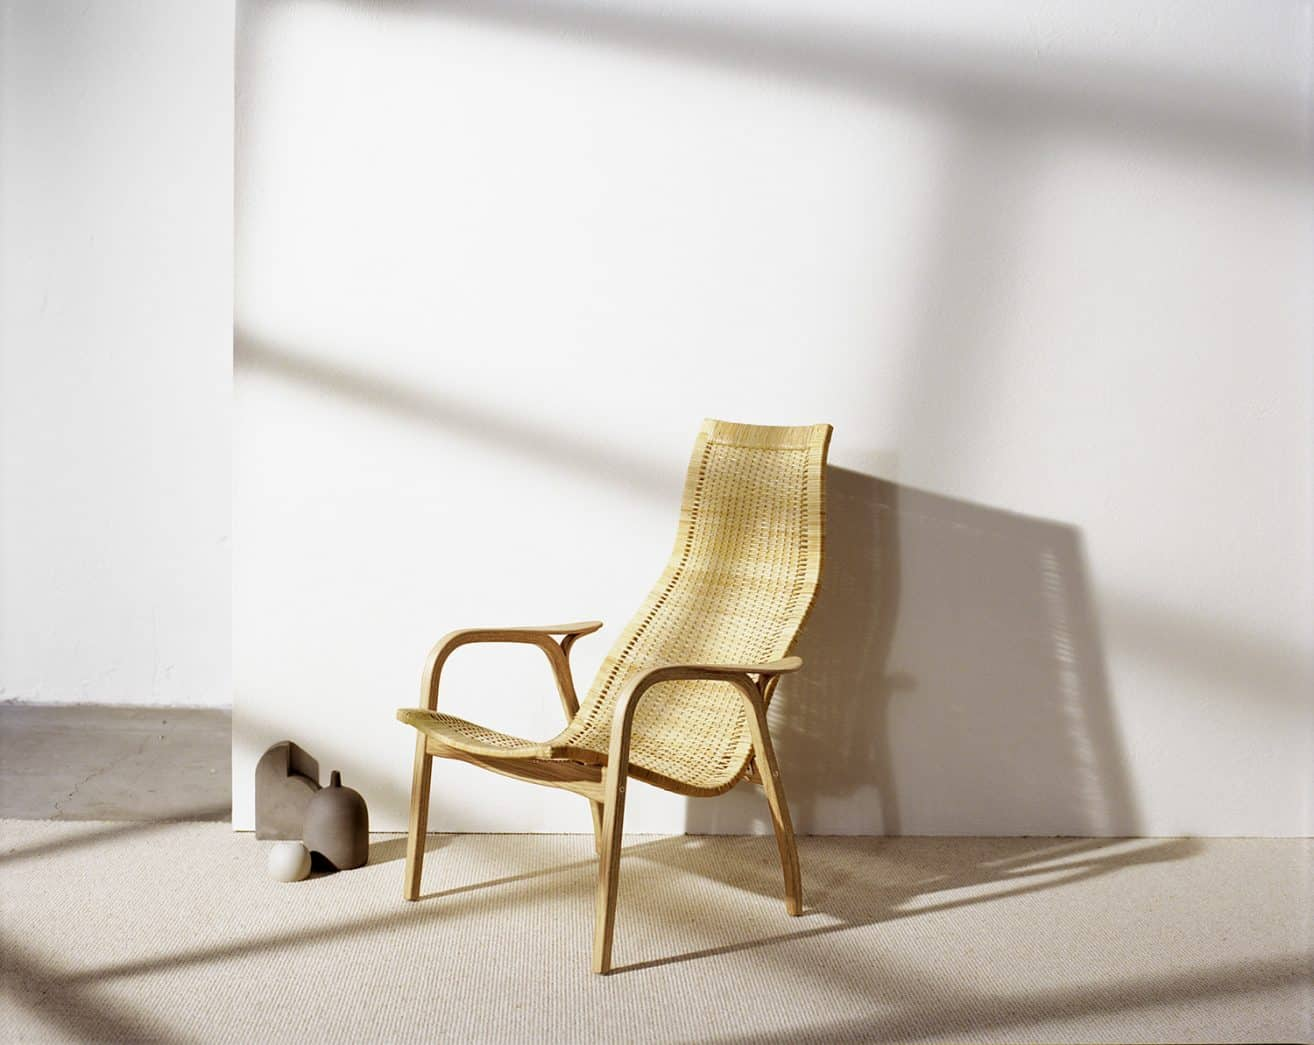 SWEDESE is relaunching three classic chairs by Yngve Ekström – Caryngo – Thema – Lamino Rattan